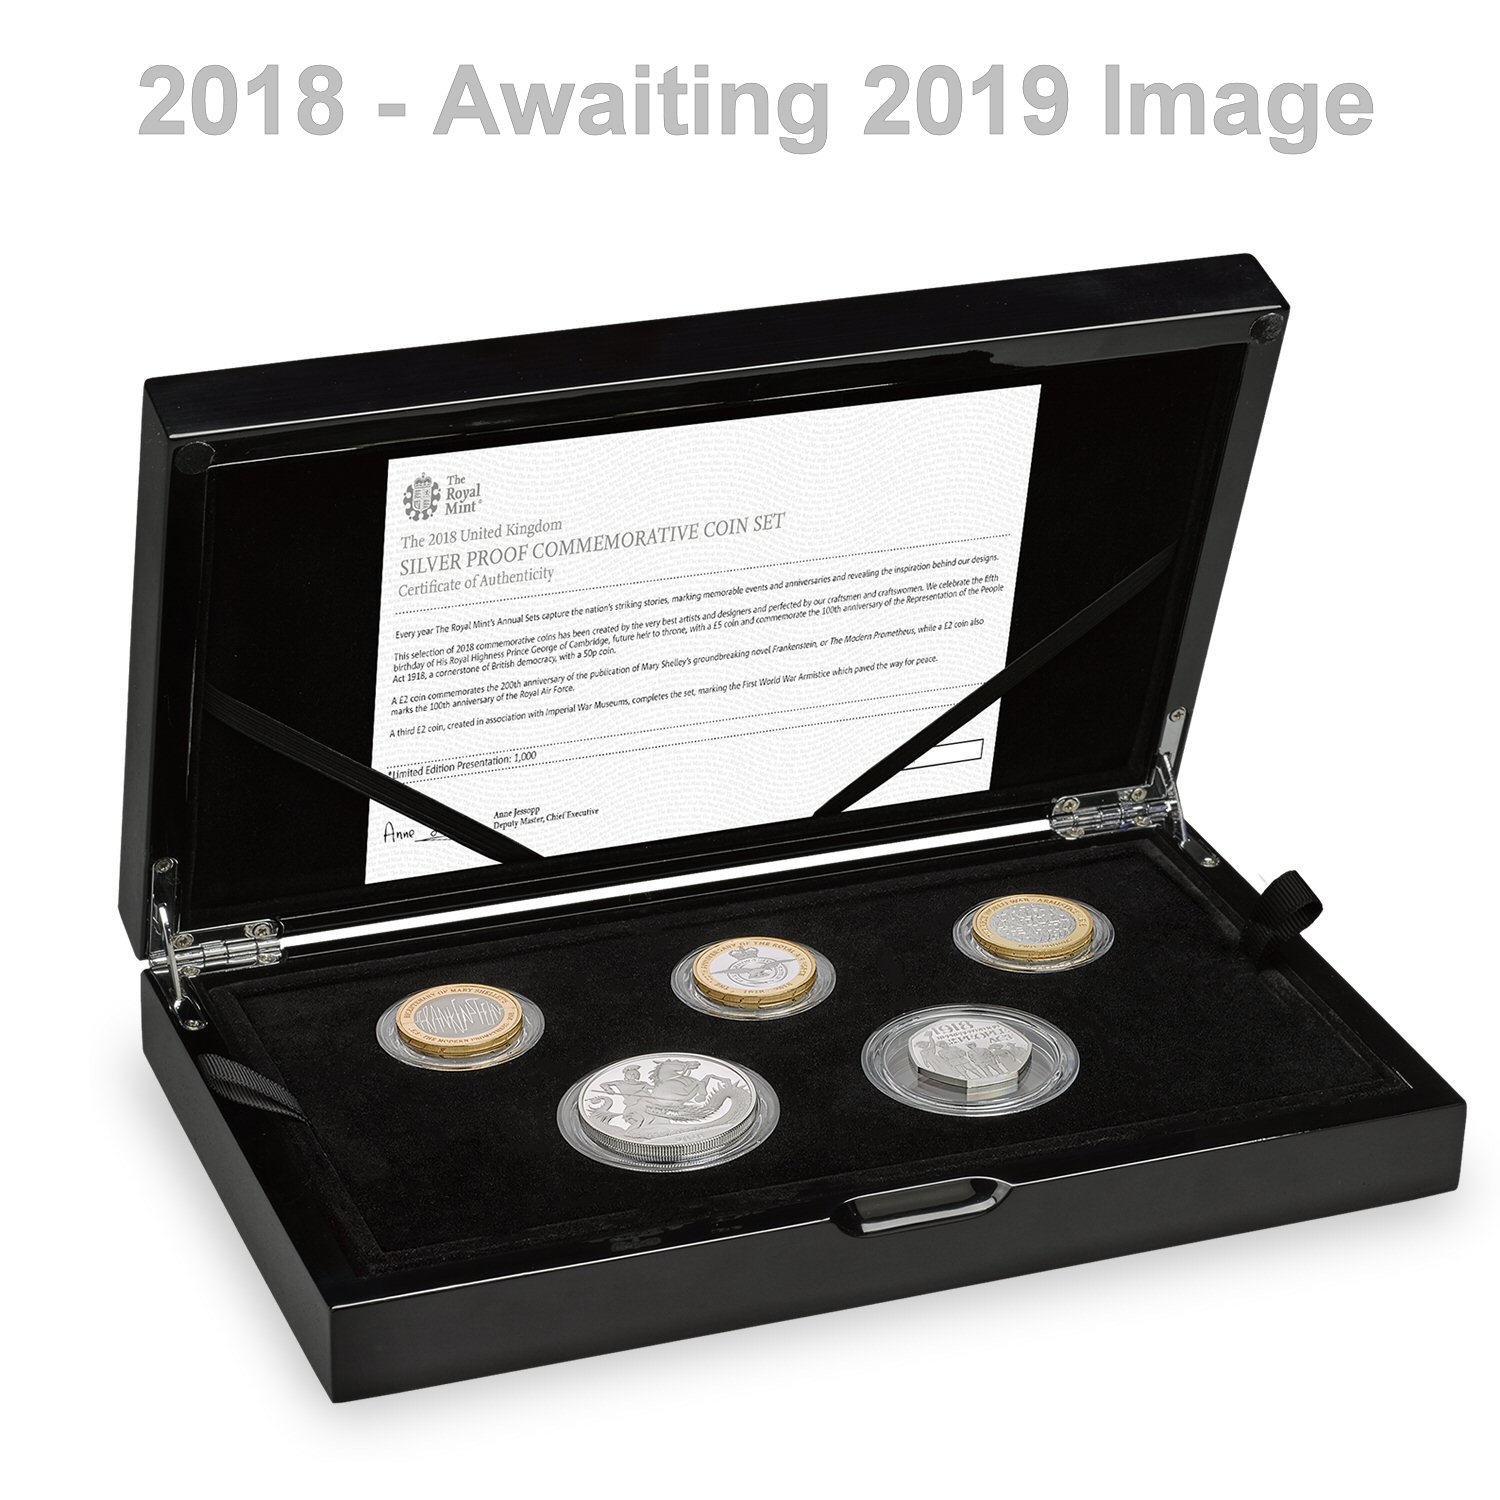 The 2019 UK Silver Proof Commemorative Coin Set